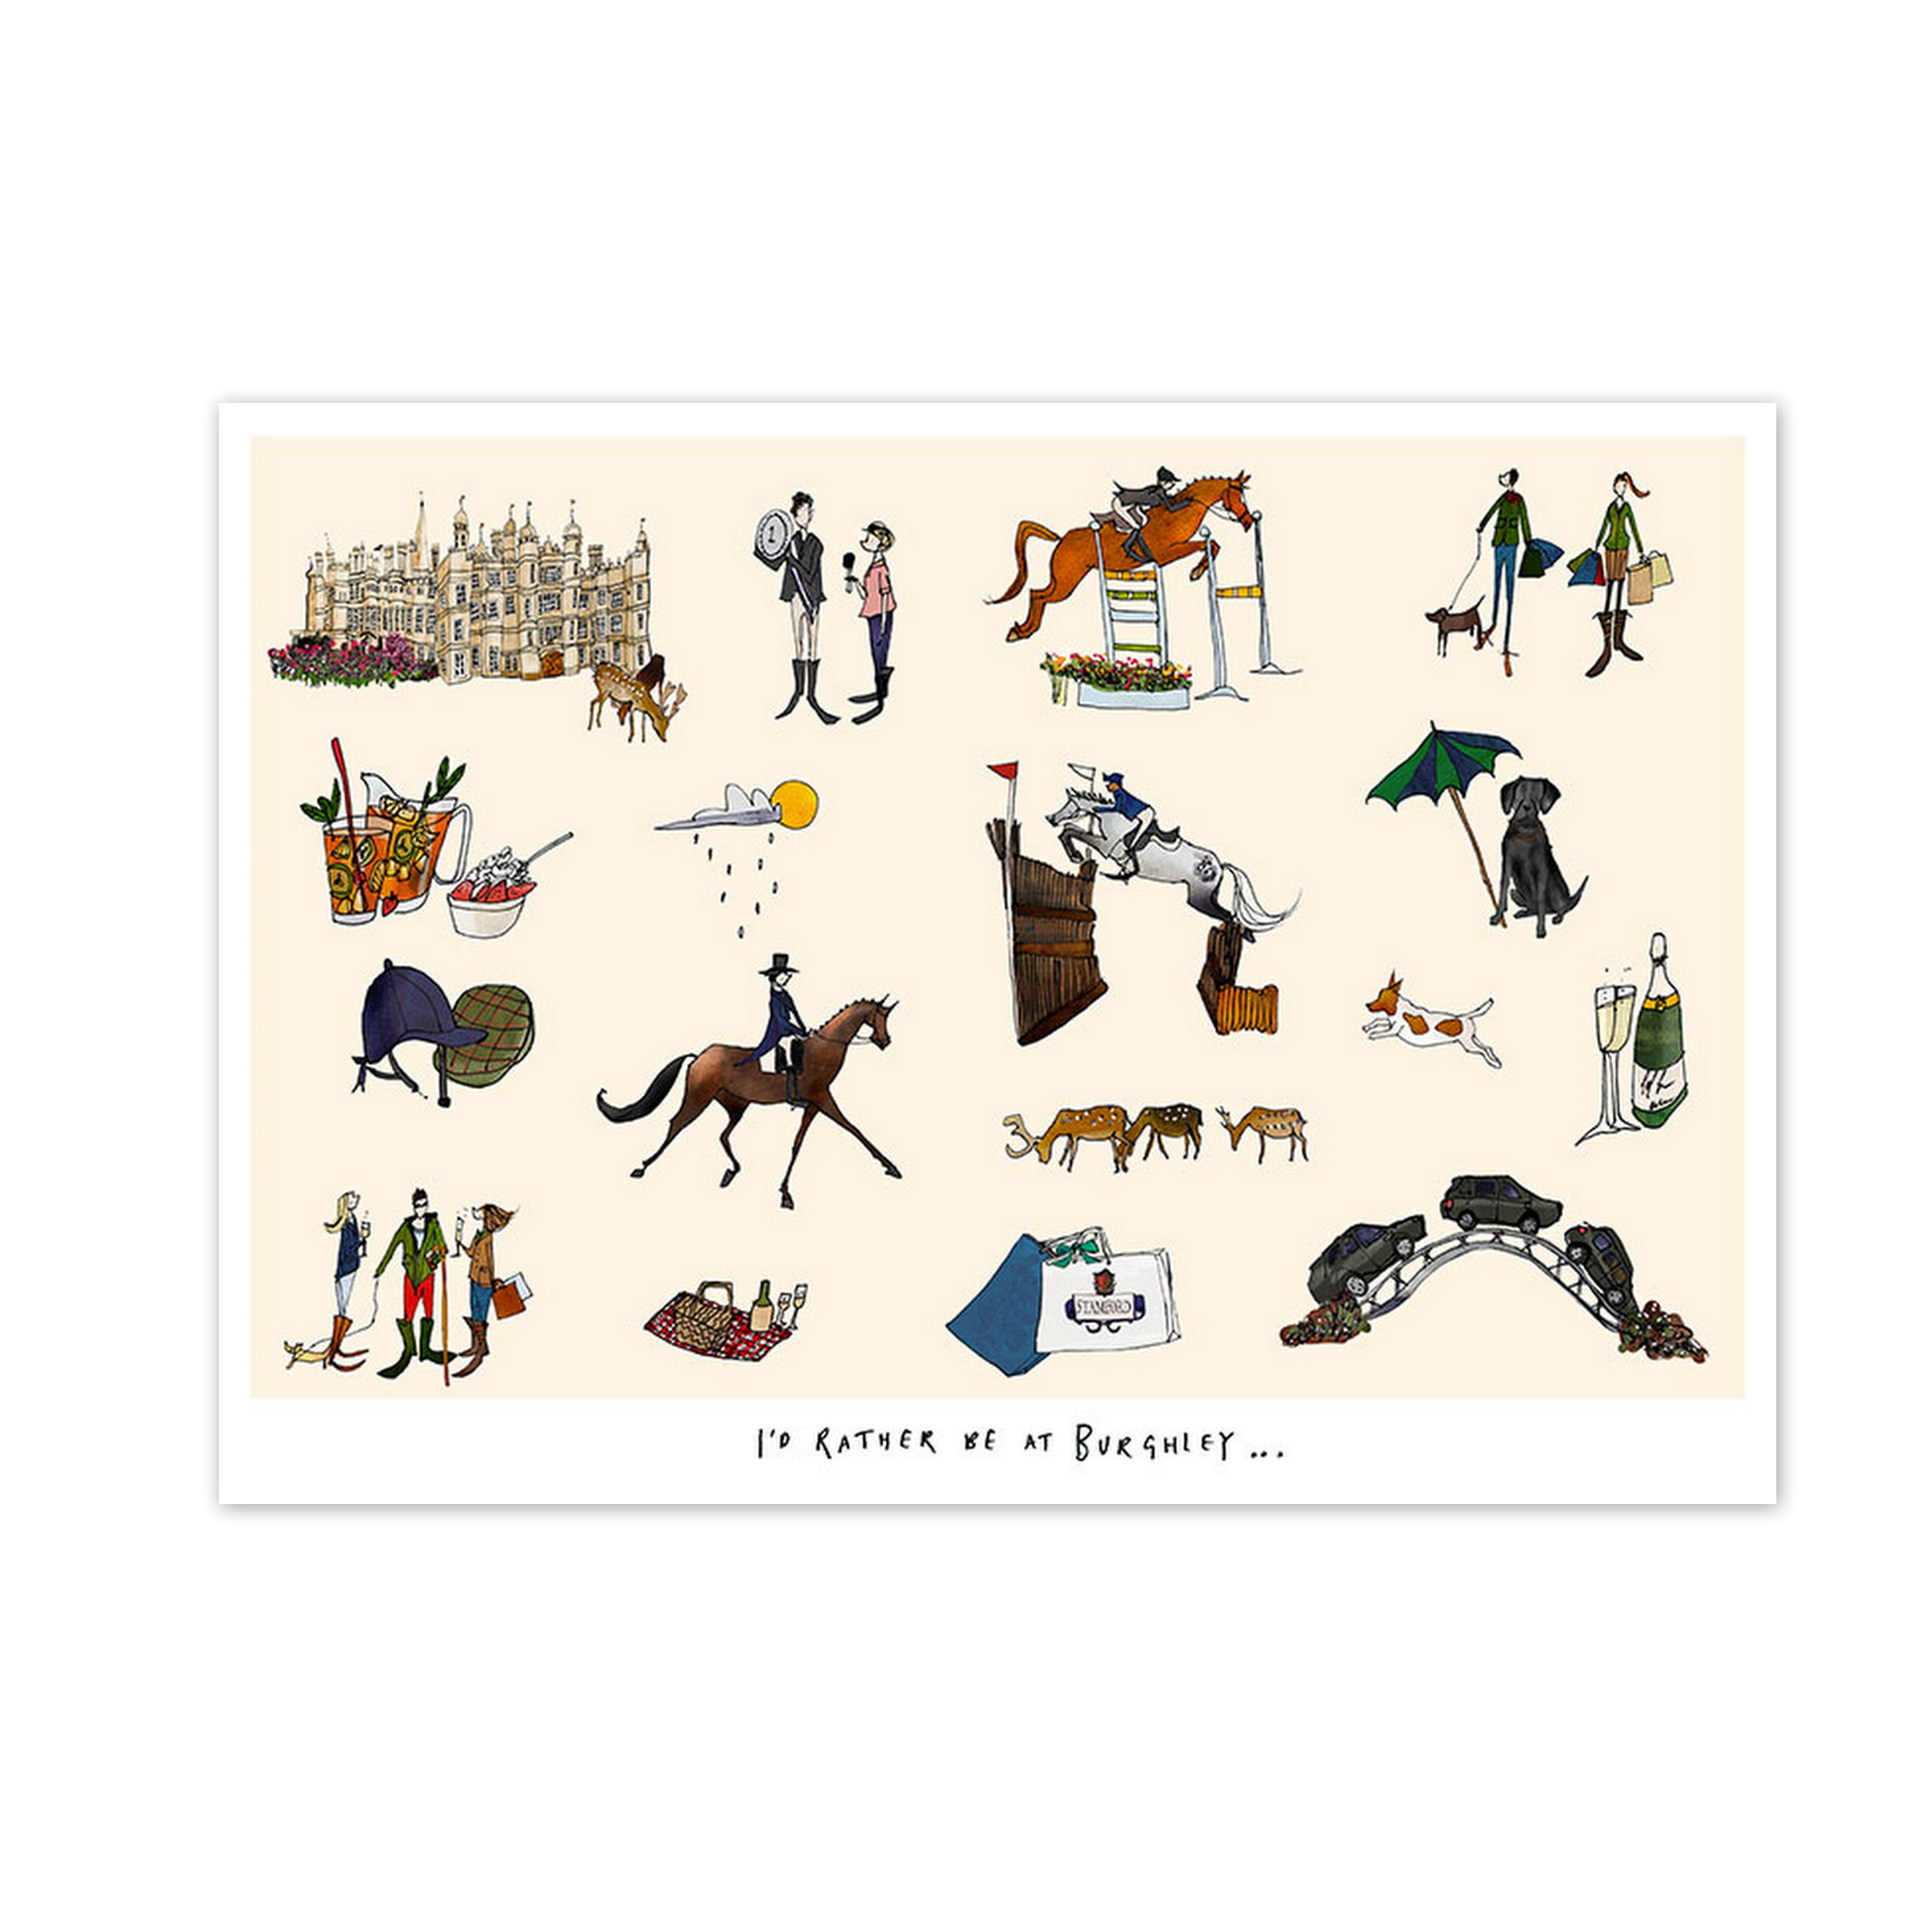 'I'd rather be at Burghley' Print, by Katie Cardew Illustrations